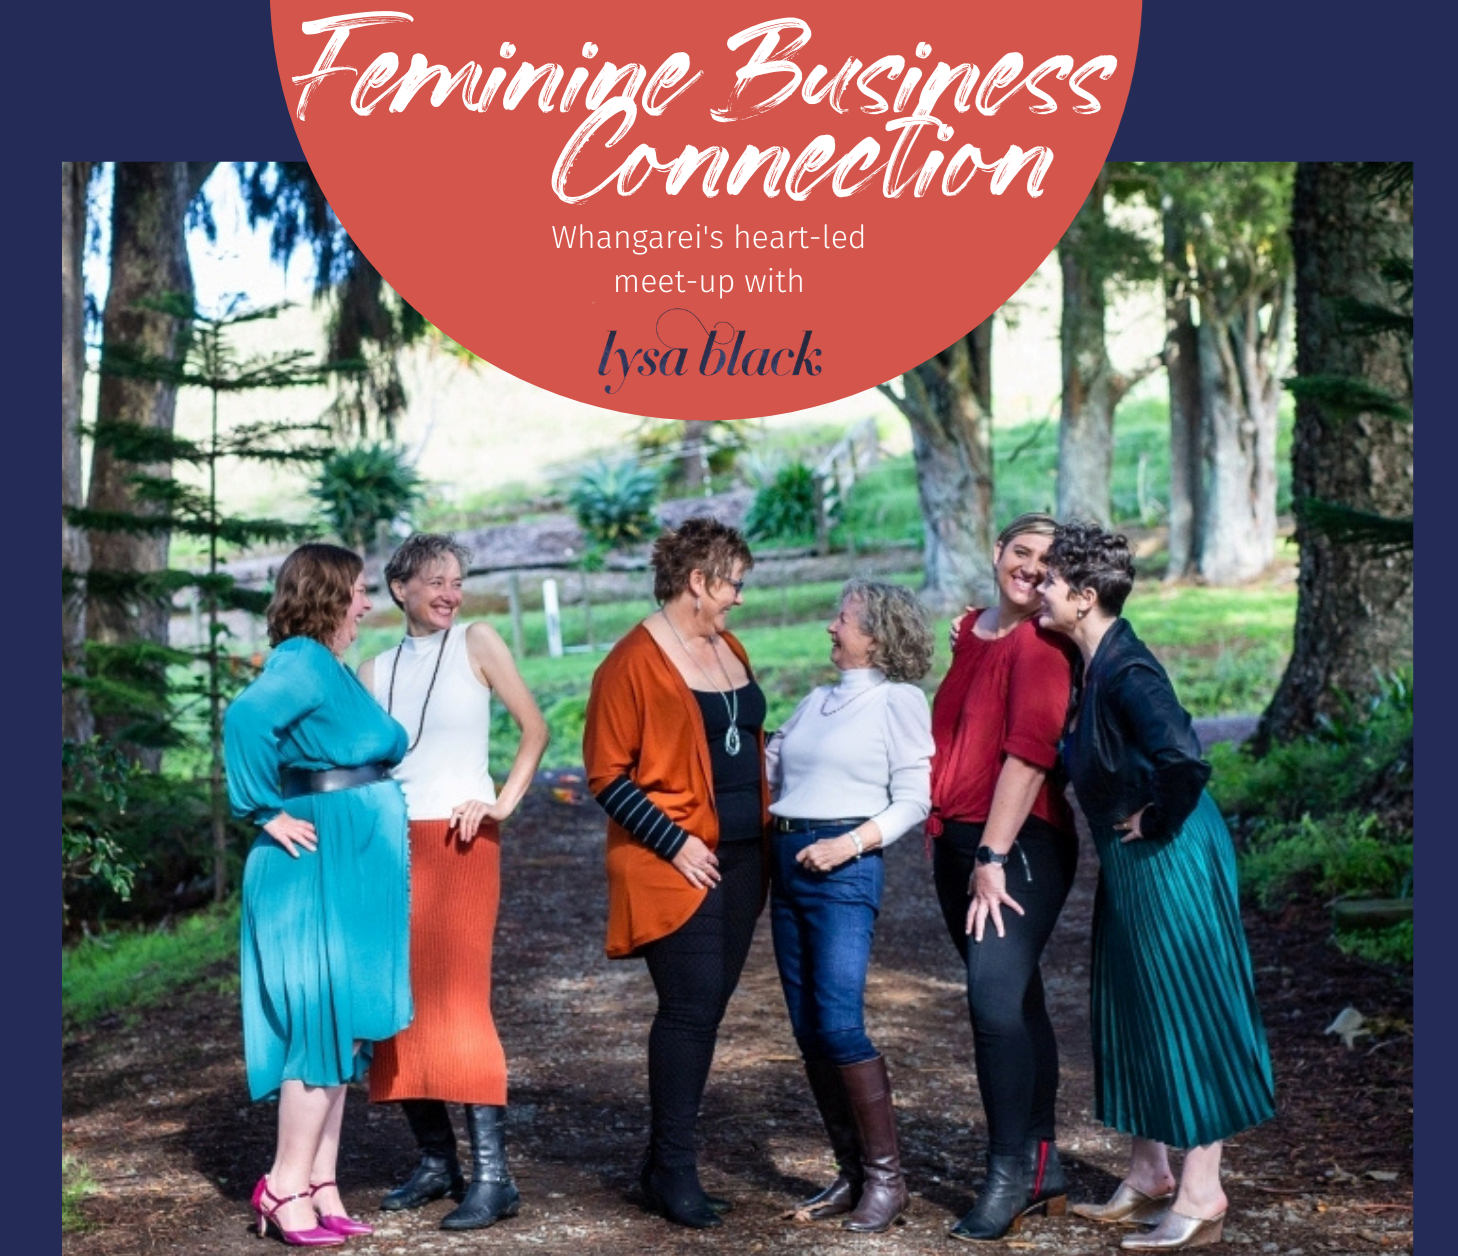 'Feminine Business Connection' Meet-Ups.